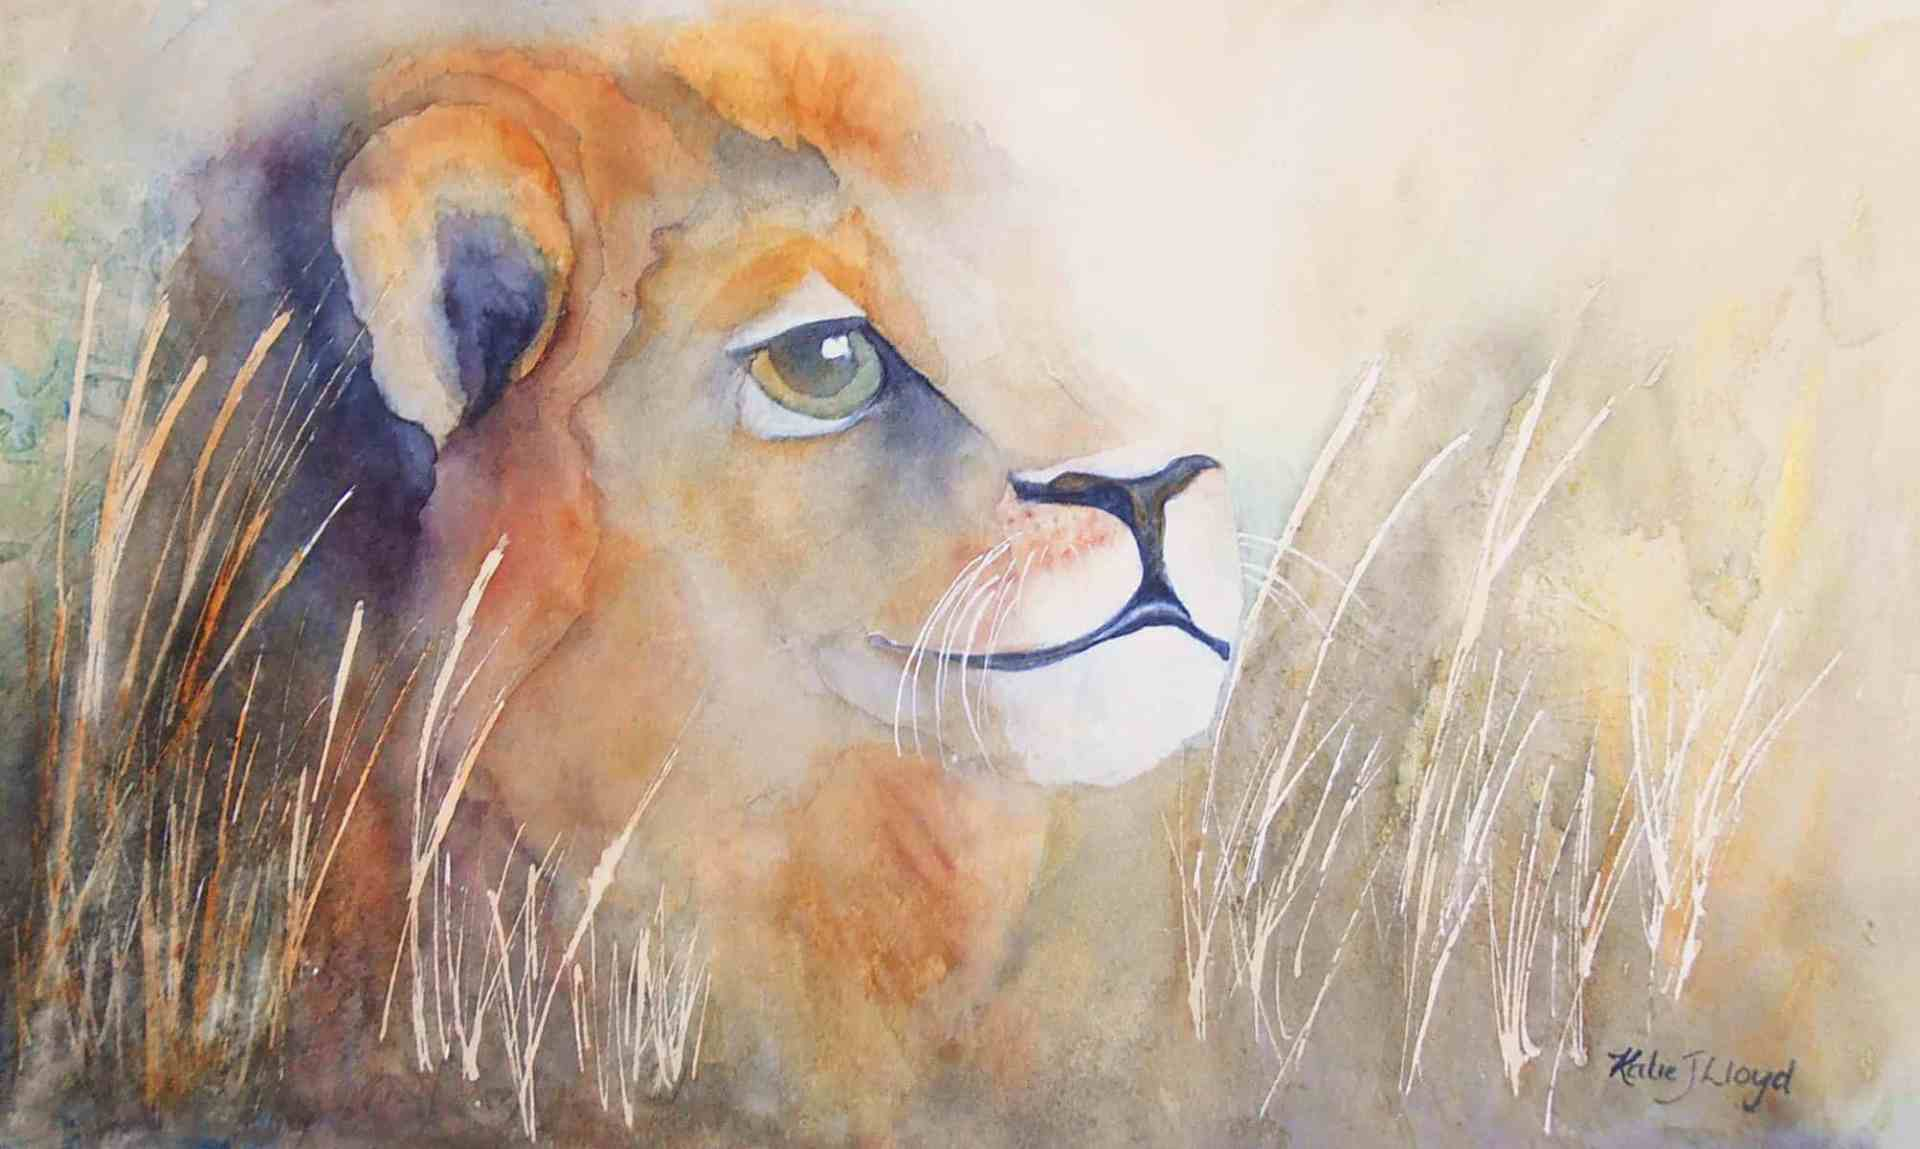 Young lion cub crouching in long grass watercolour painting by artist Katie Lloyd